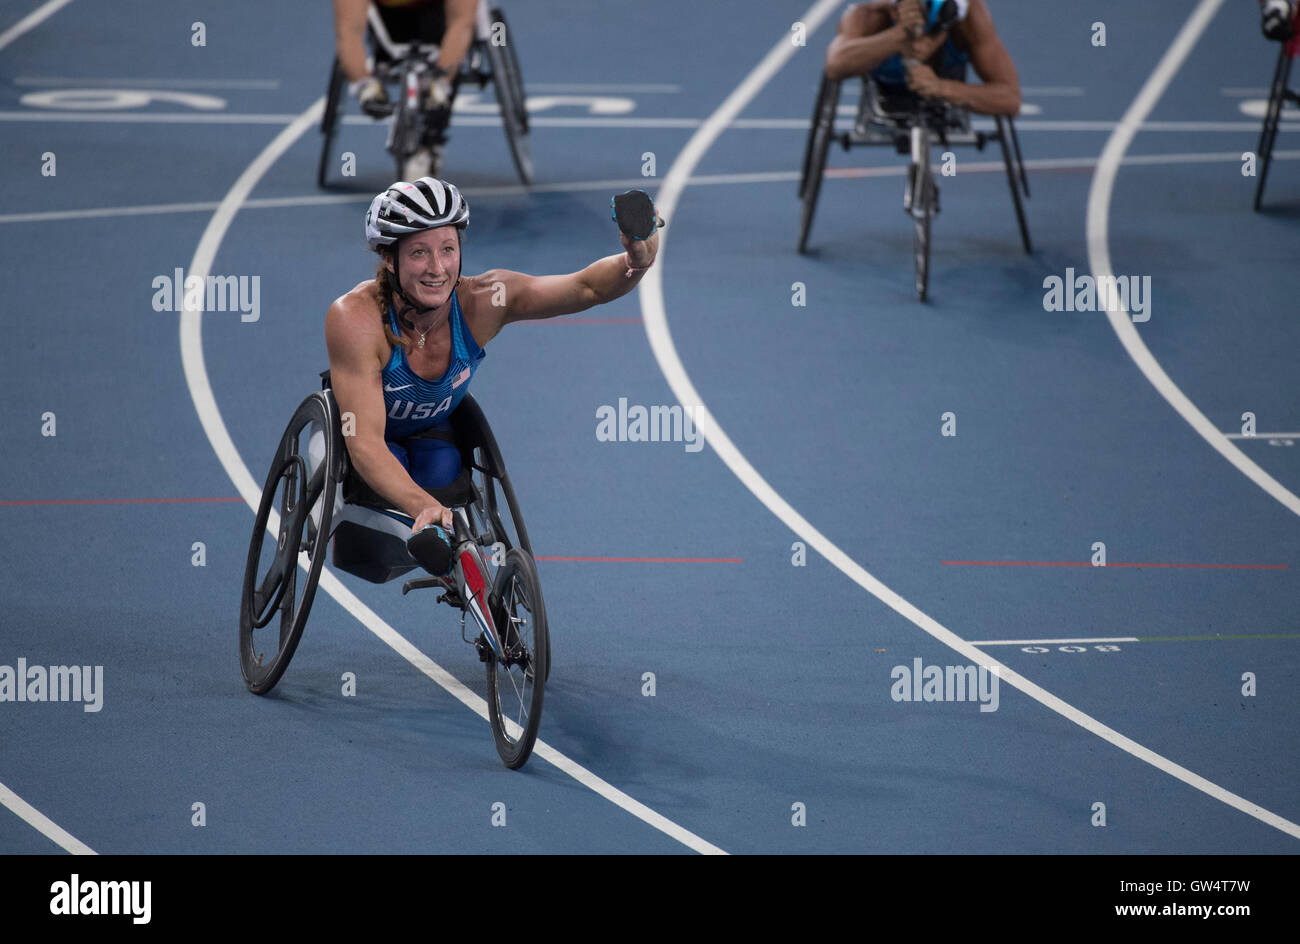 USA's Tatyana McFadden waves to crowd after wining the women's 400 meter T54 race at the Rio 2016 Paralympics. - Stock Image